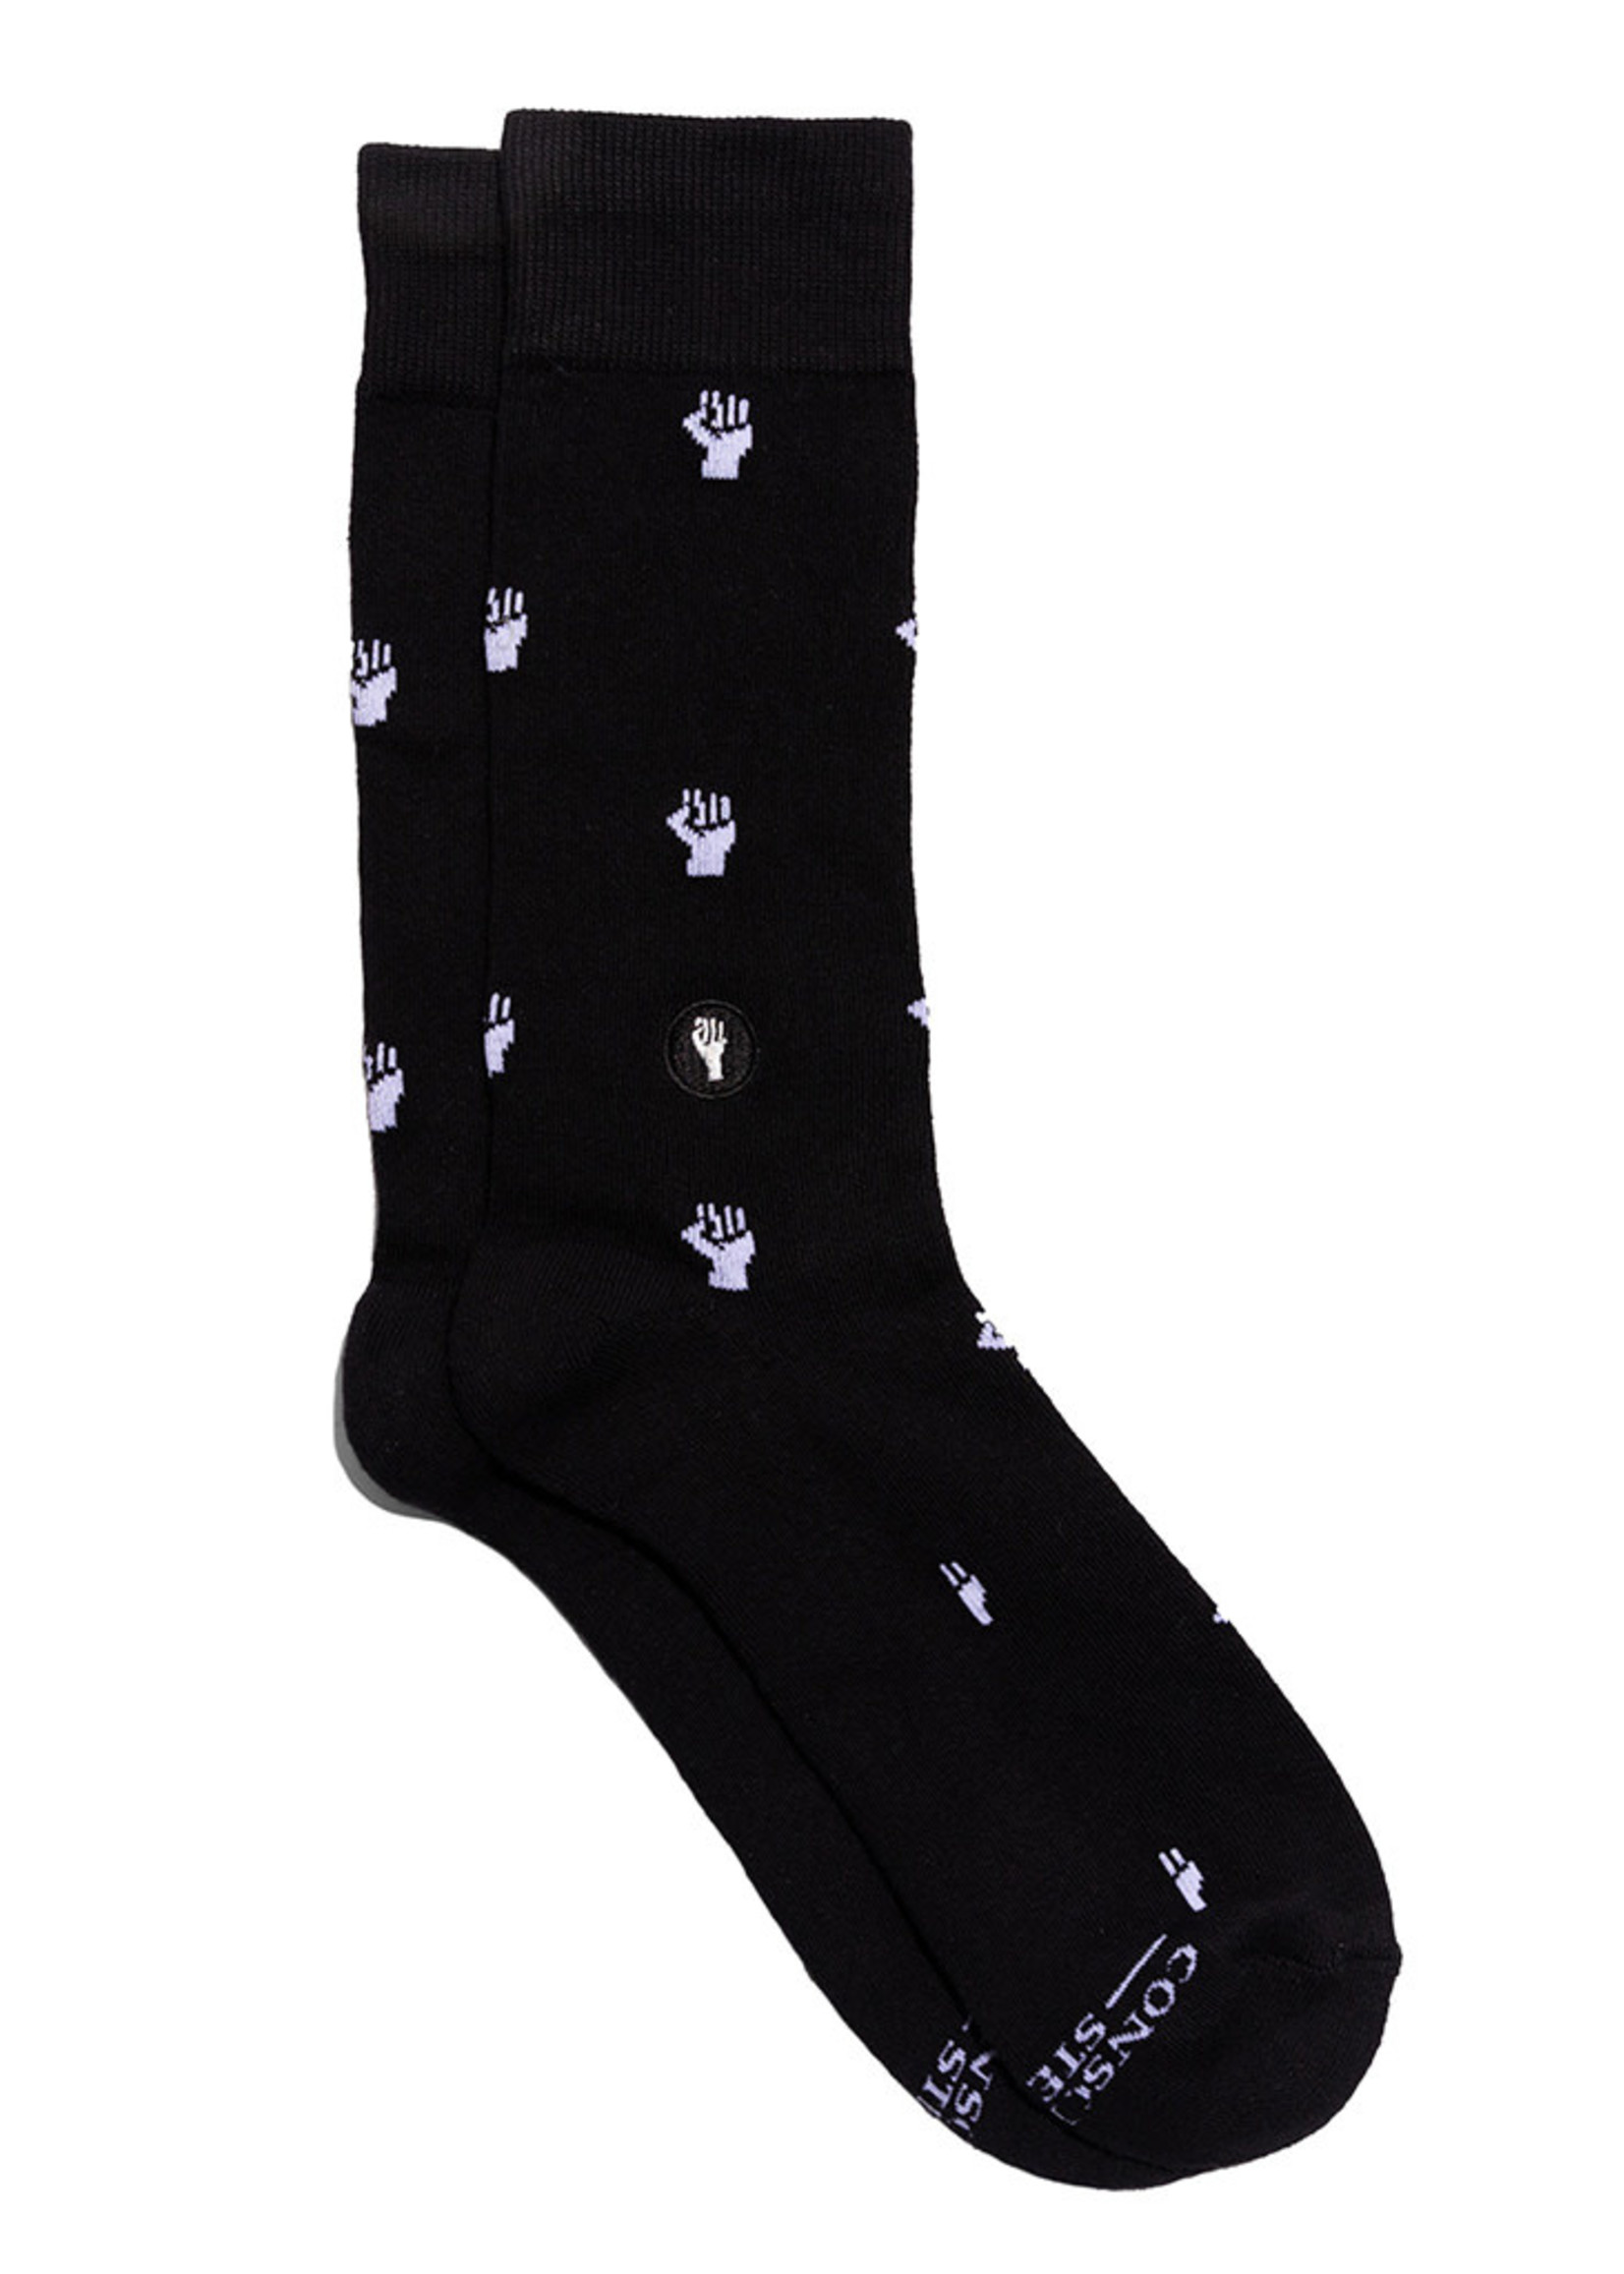 Conscious Step Women's Socks That Fight For Equality [black]